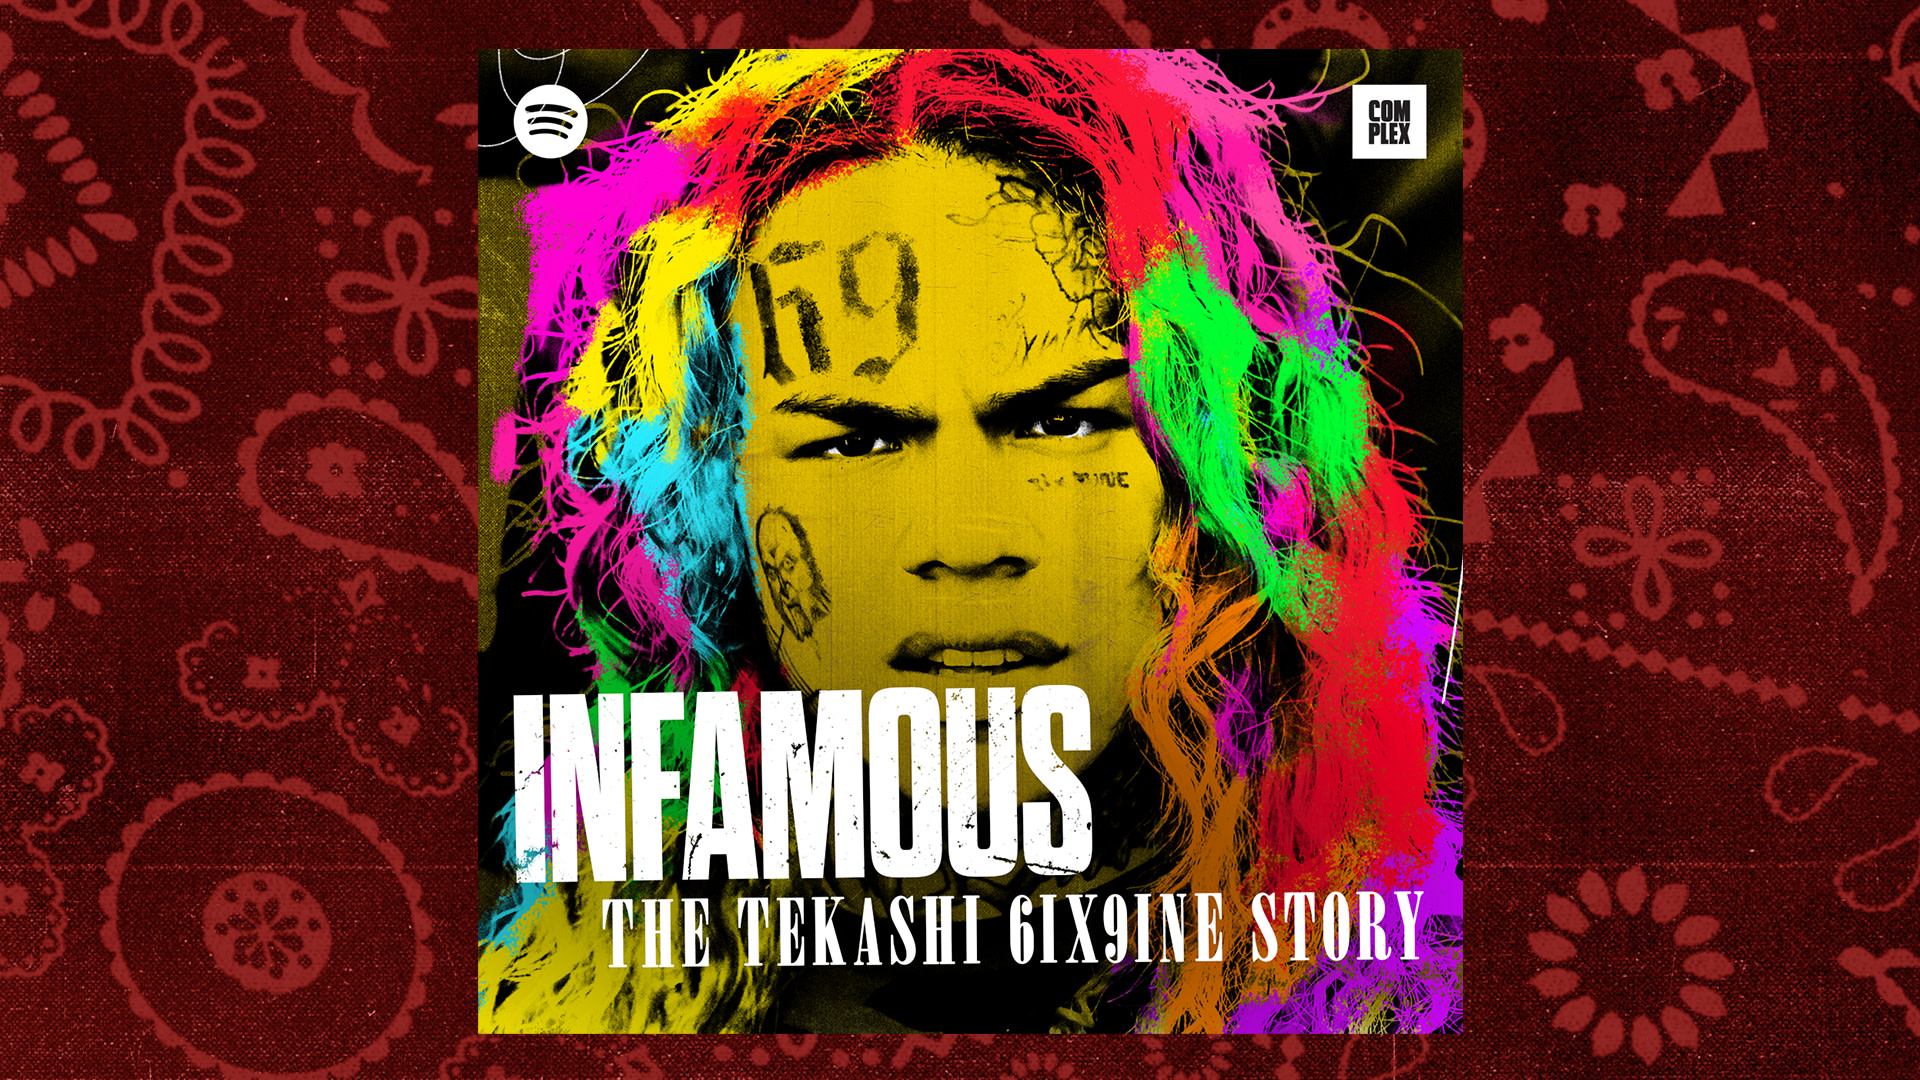 Listen to the Second Episode of 'Infamous: The Tekashi 6ix9ine Story'